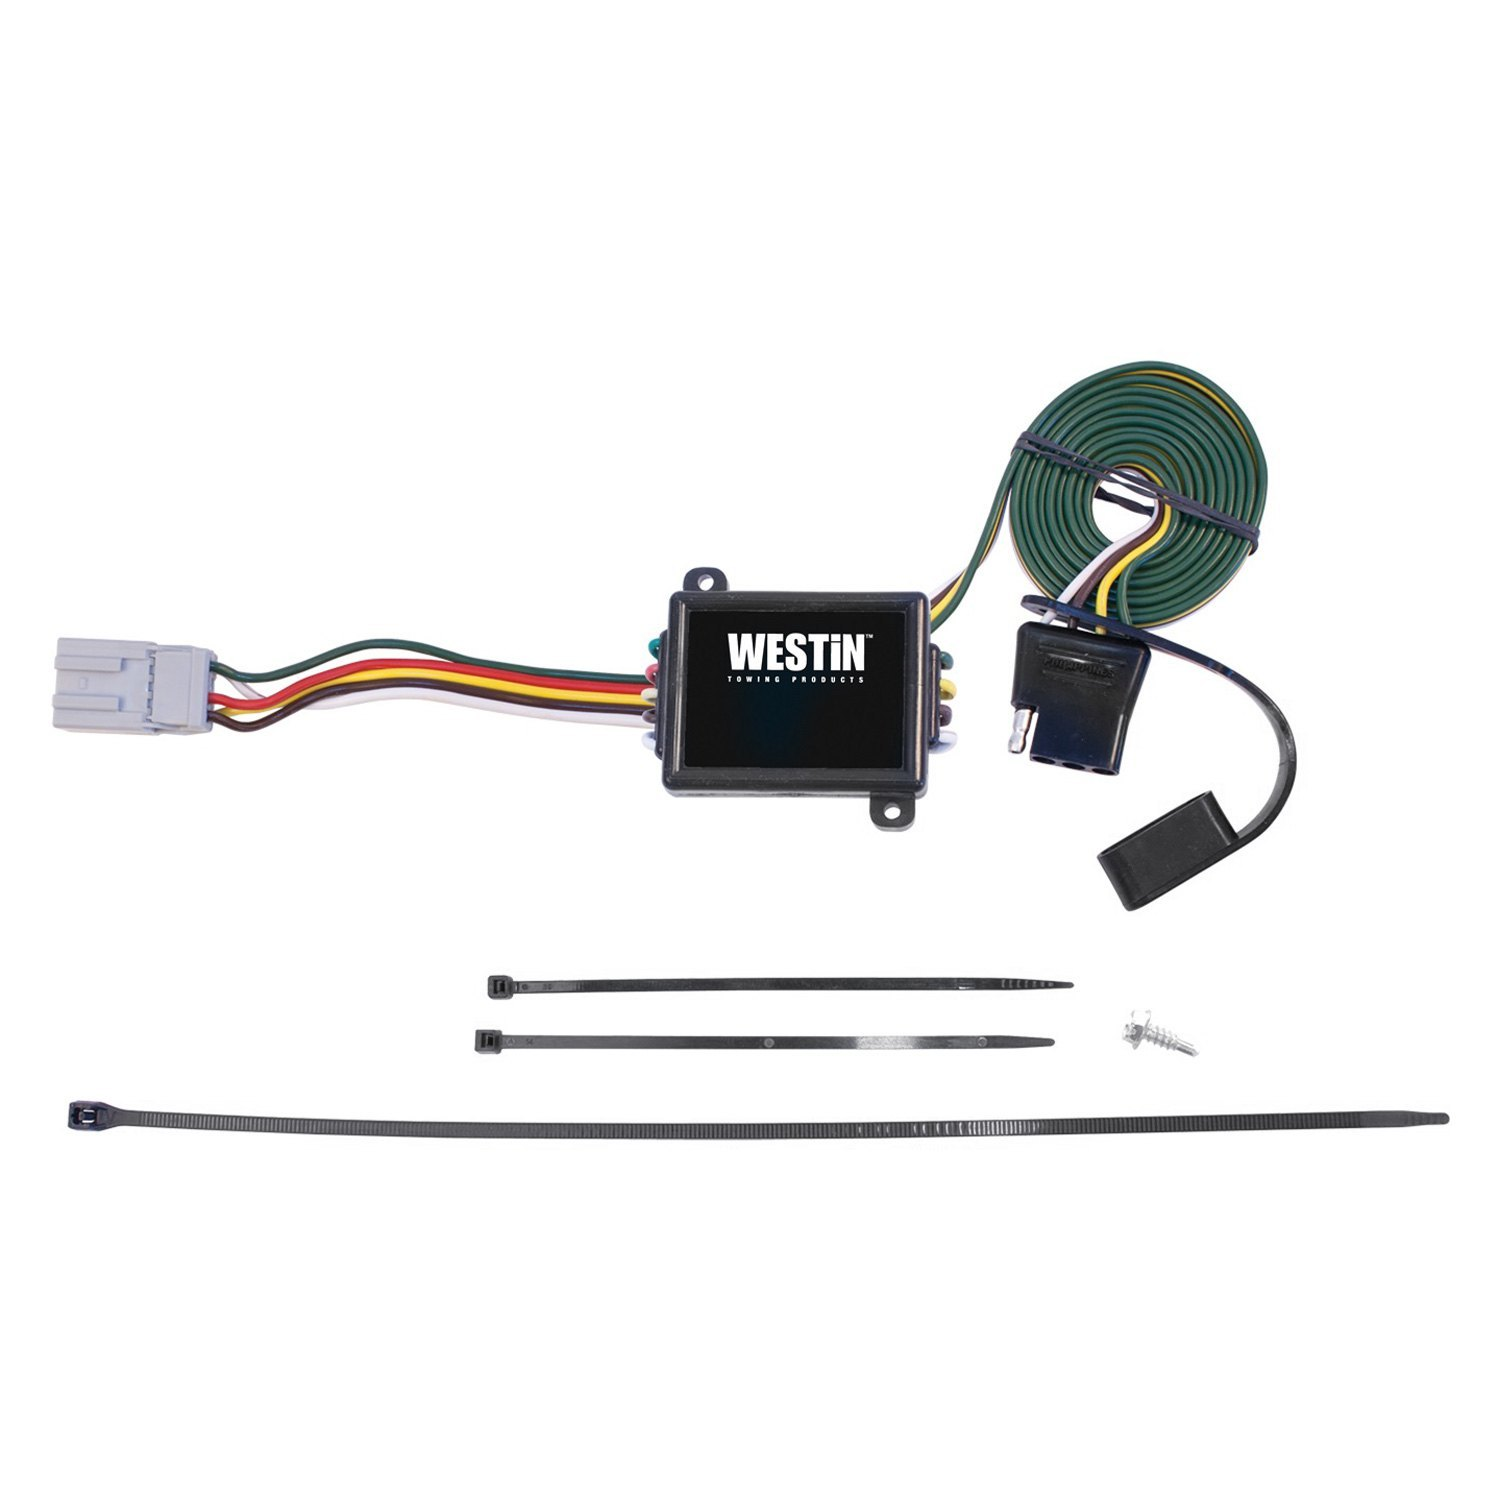 hight resolution of details about for honda pilot 2003 2008 westin towing wiring harness